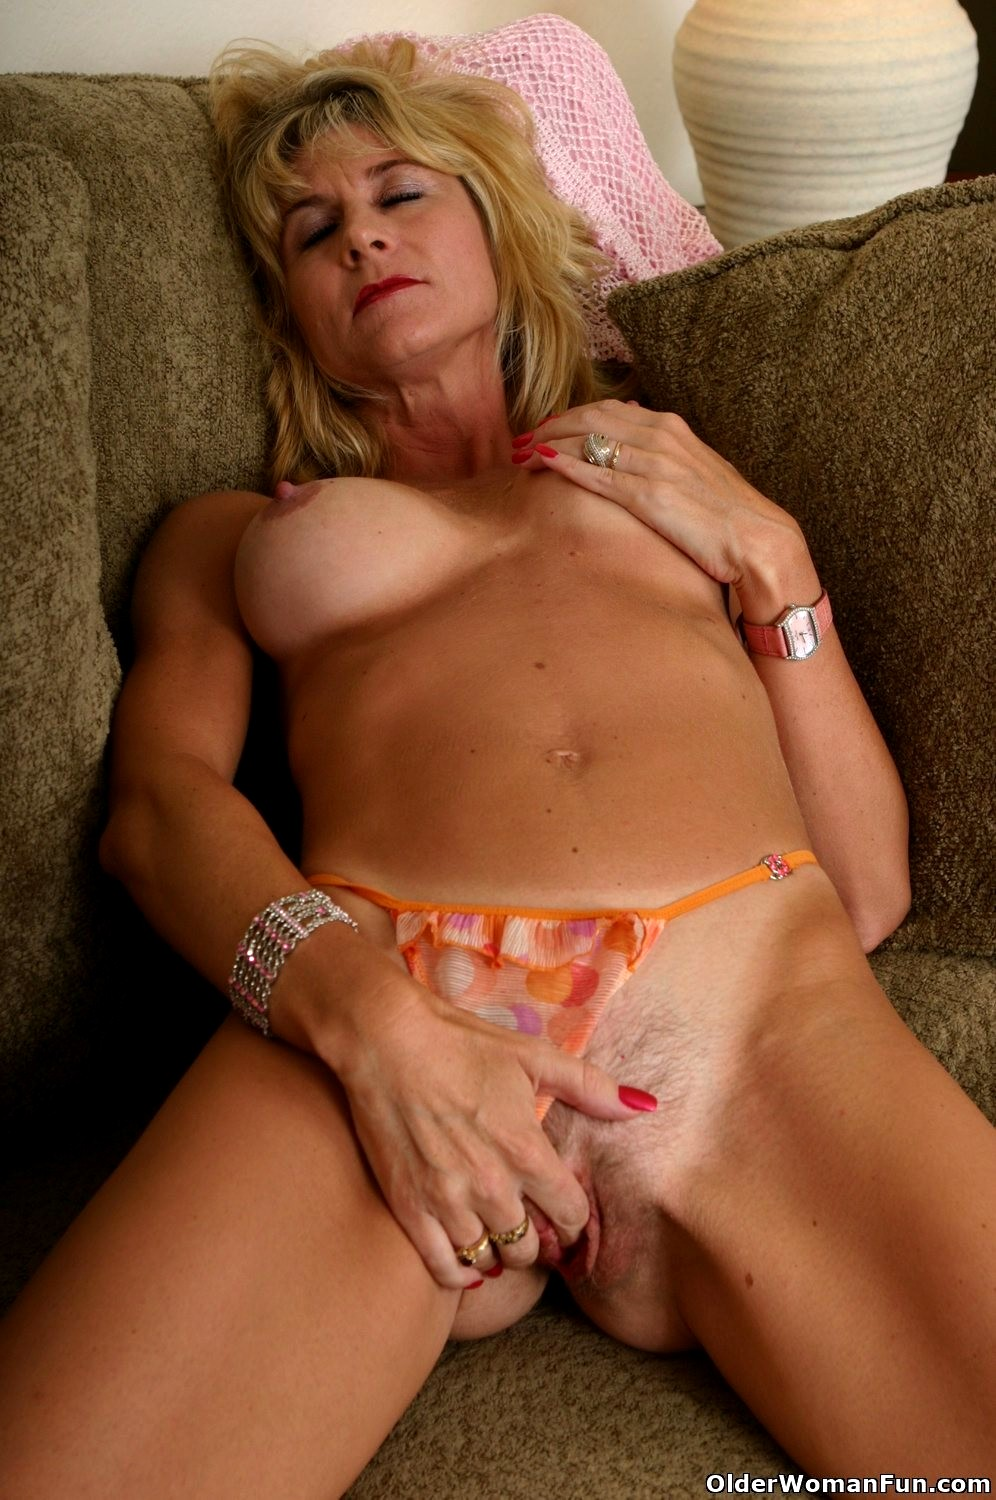 Older women fun porn